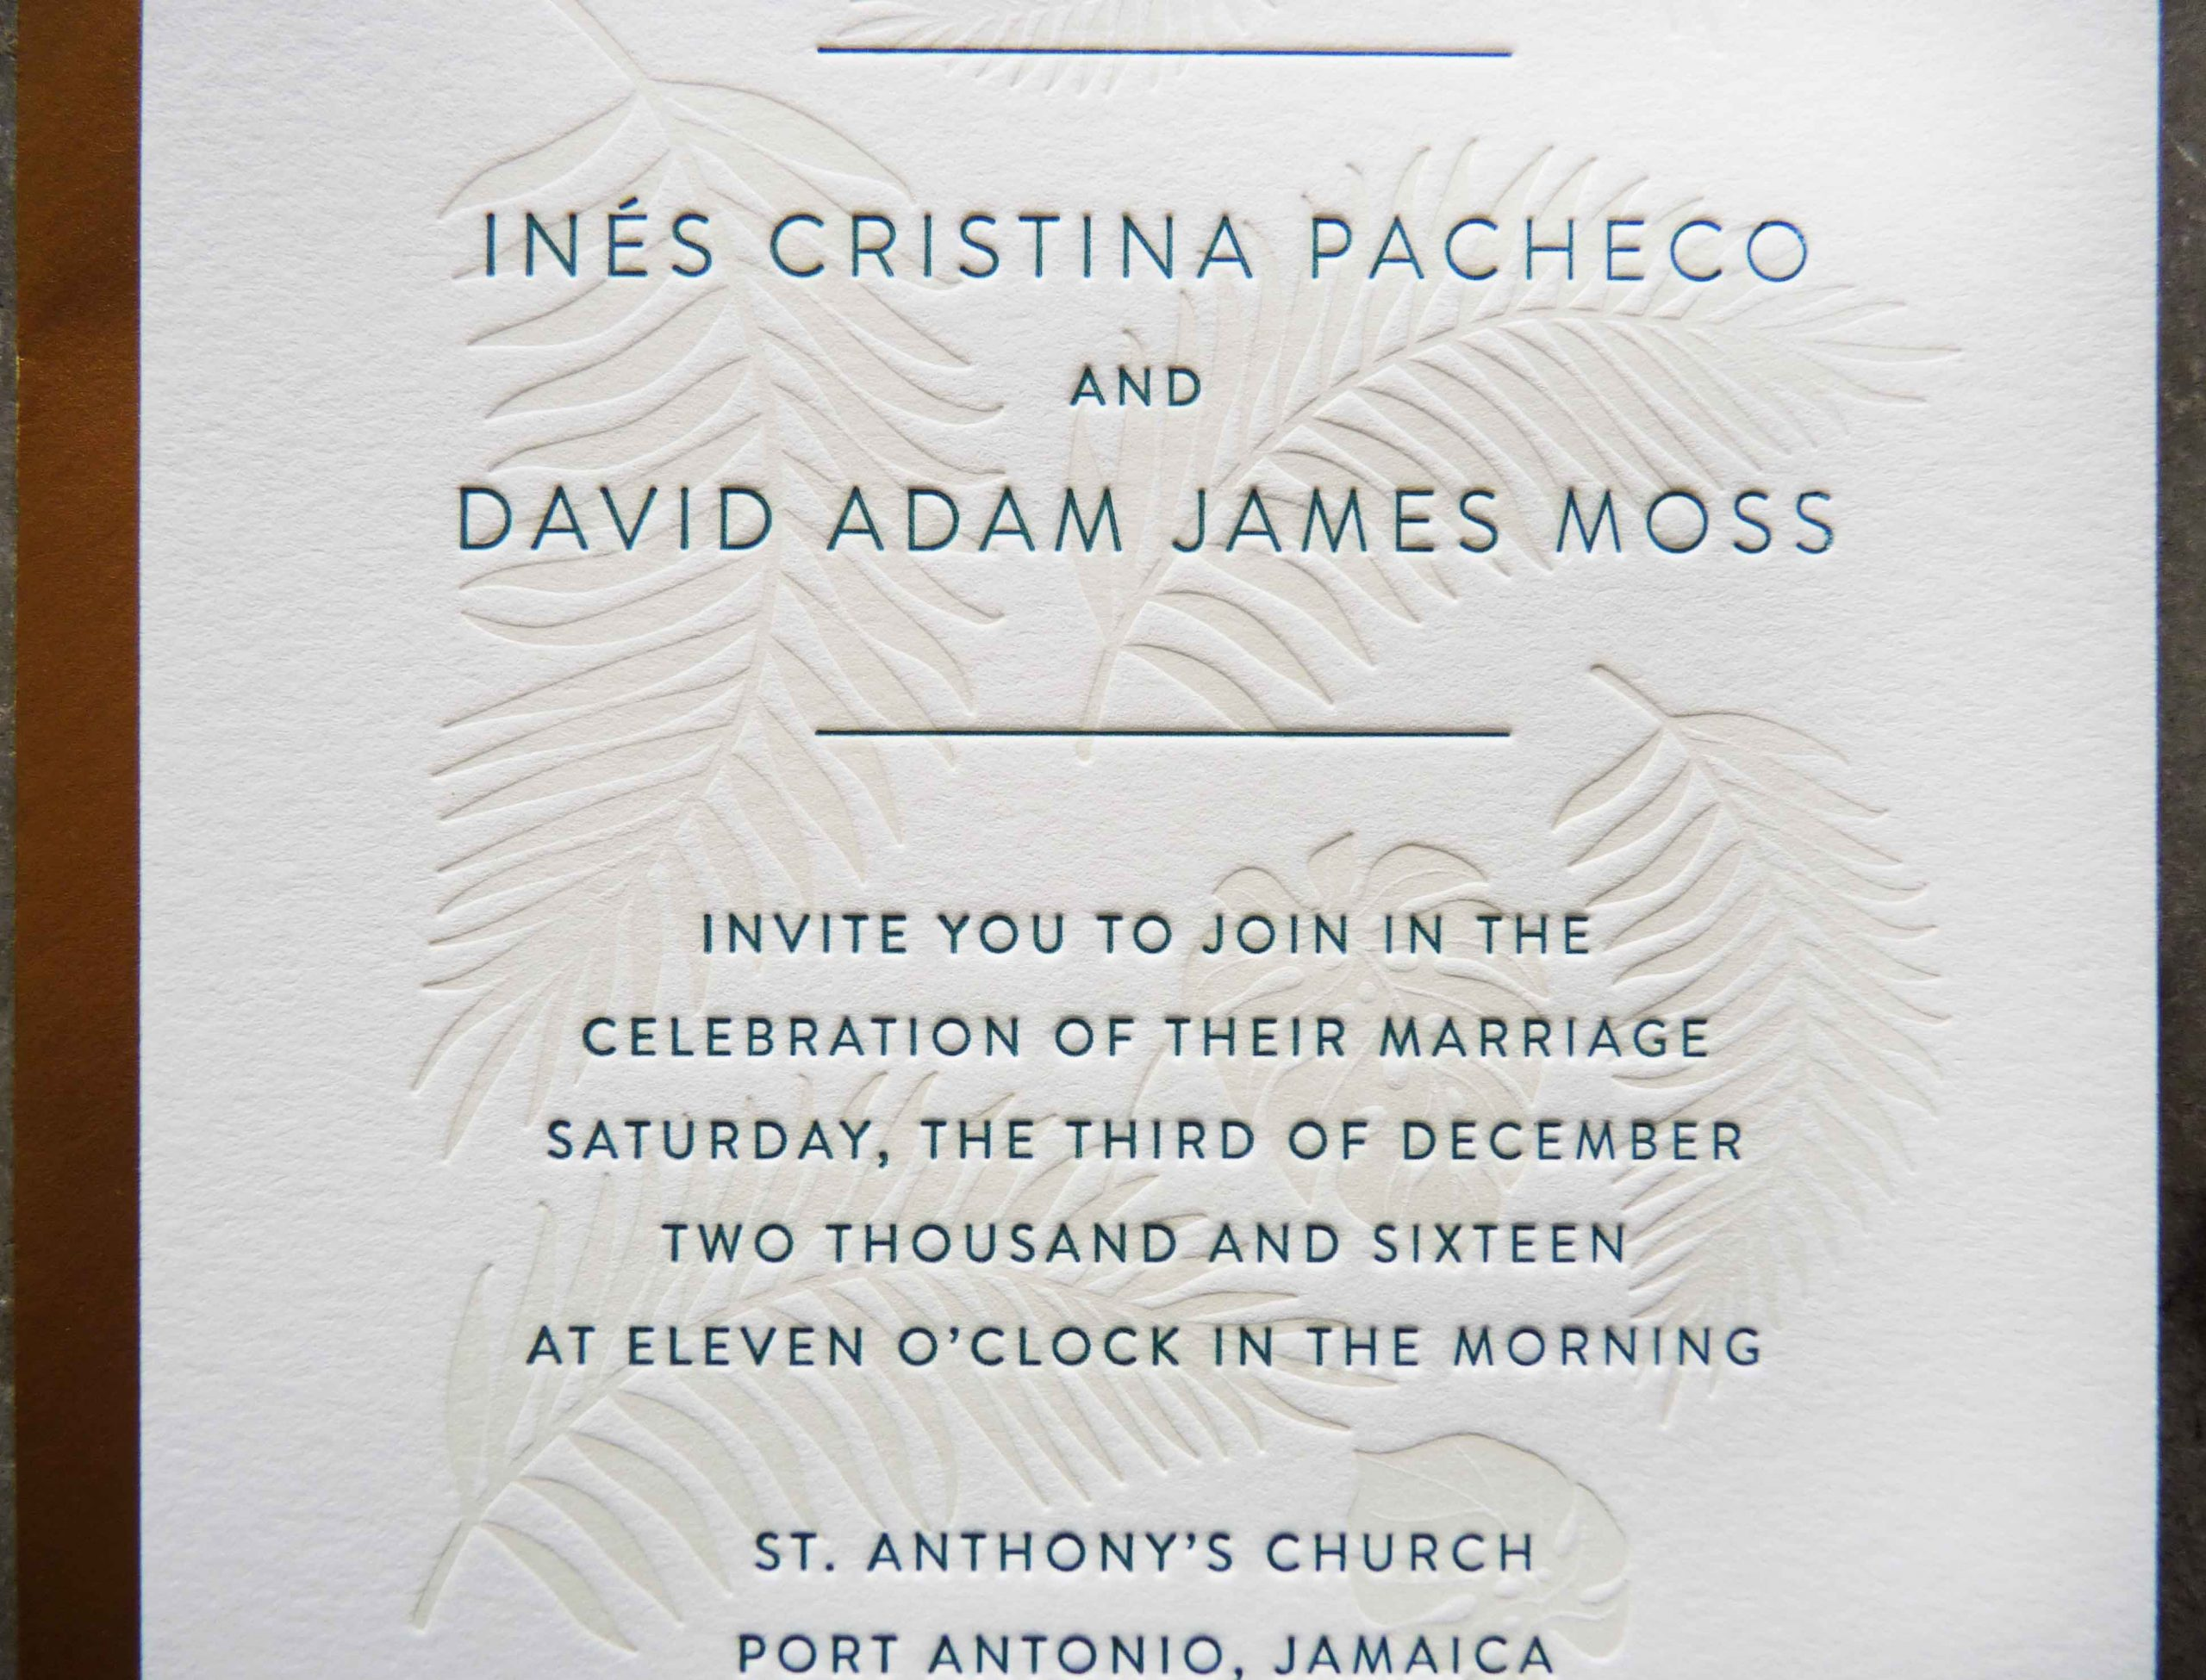 A wedding invitation with blind (no ink) deboss (embossing) and dark green lettering printed on soft, thick off-white cotton paper. Port Antonio, Jamaica